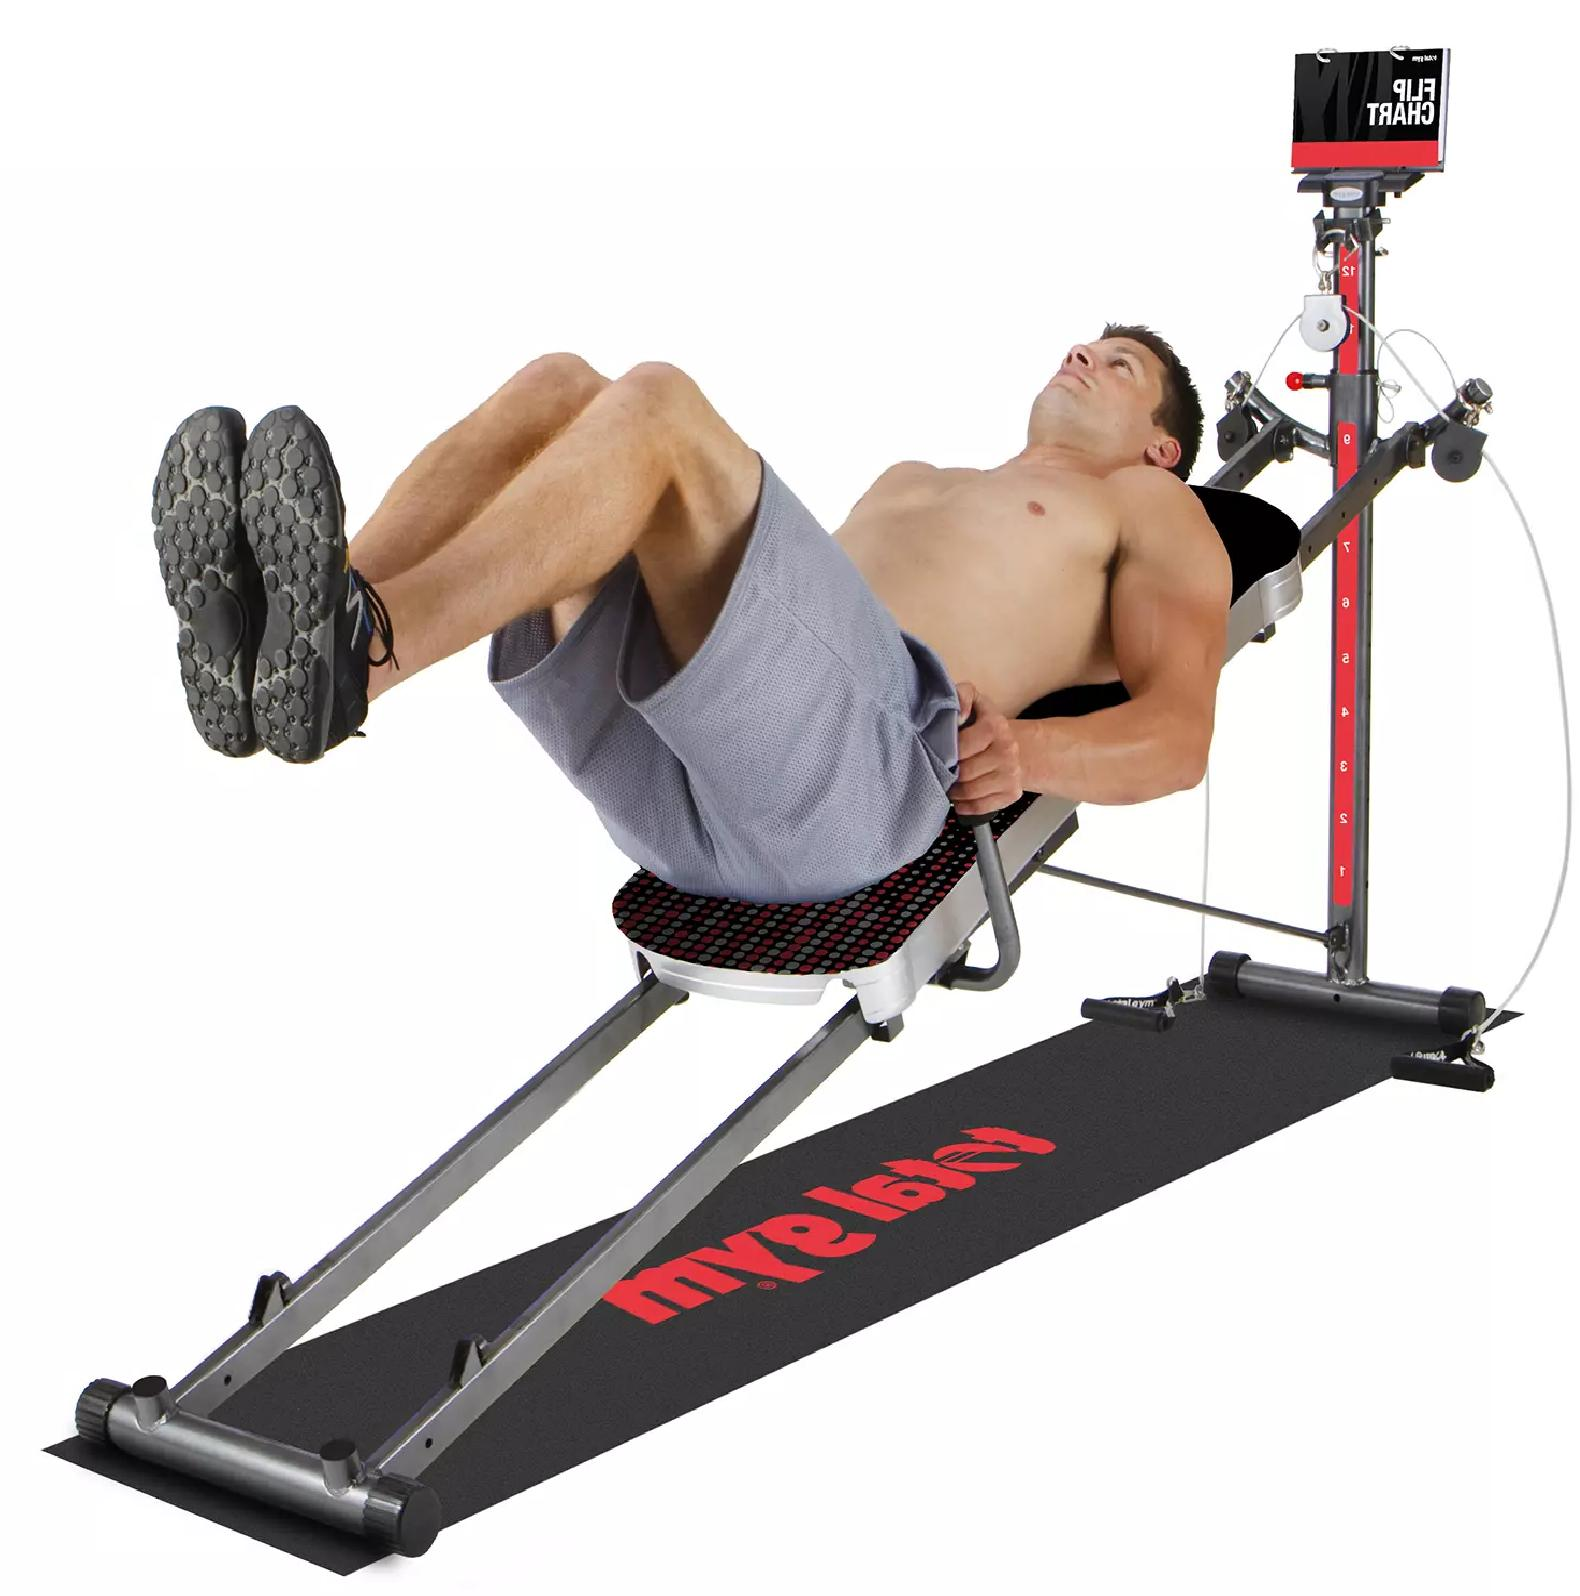 Total Gym XL7 Gym with Workout - NEW